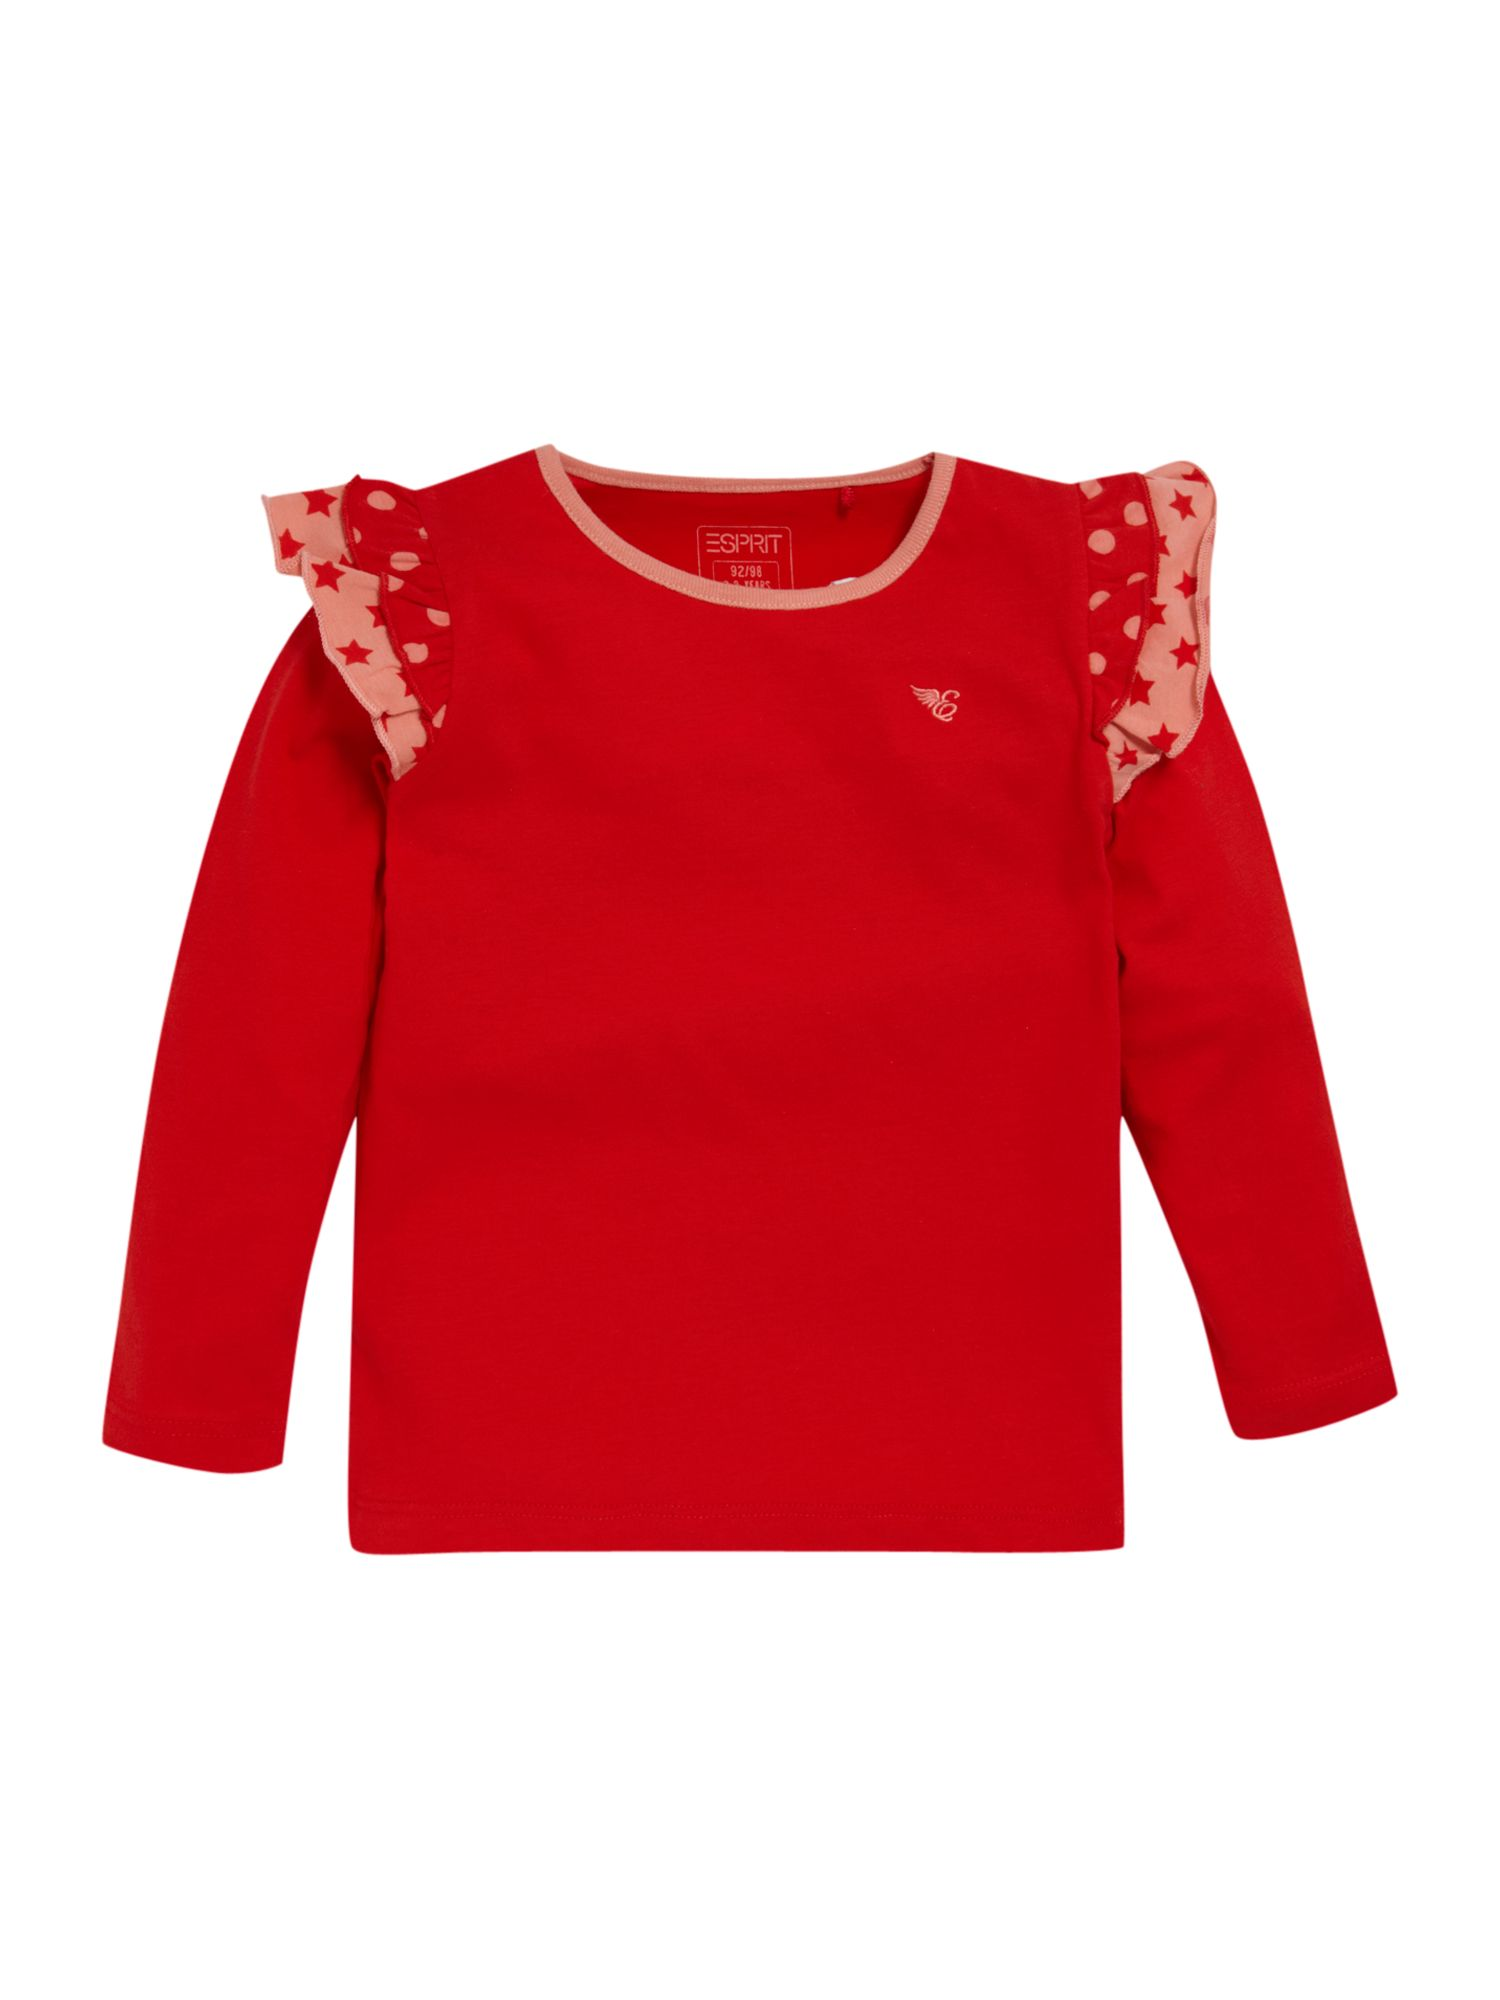 Esprit Long sleeve frill shoulder t-shirt, Red product image